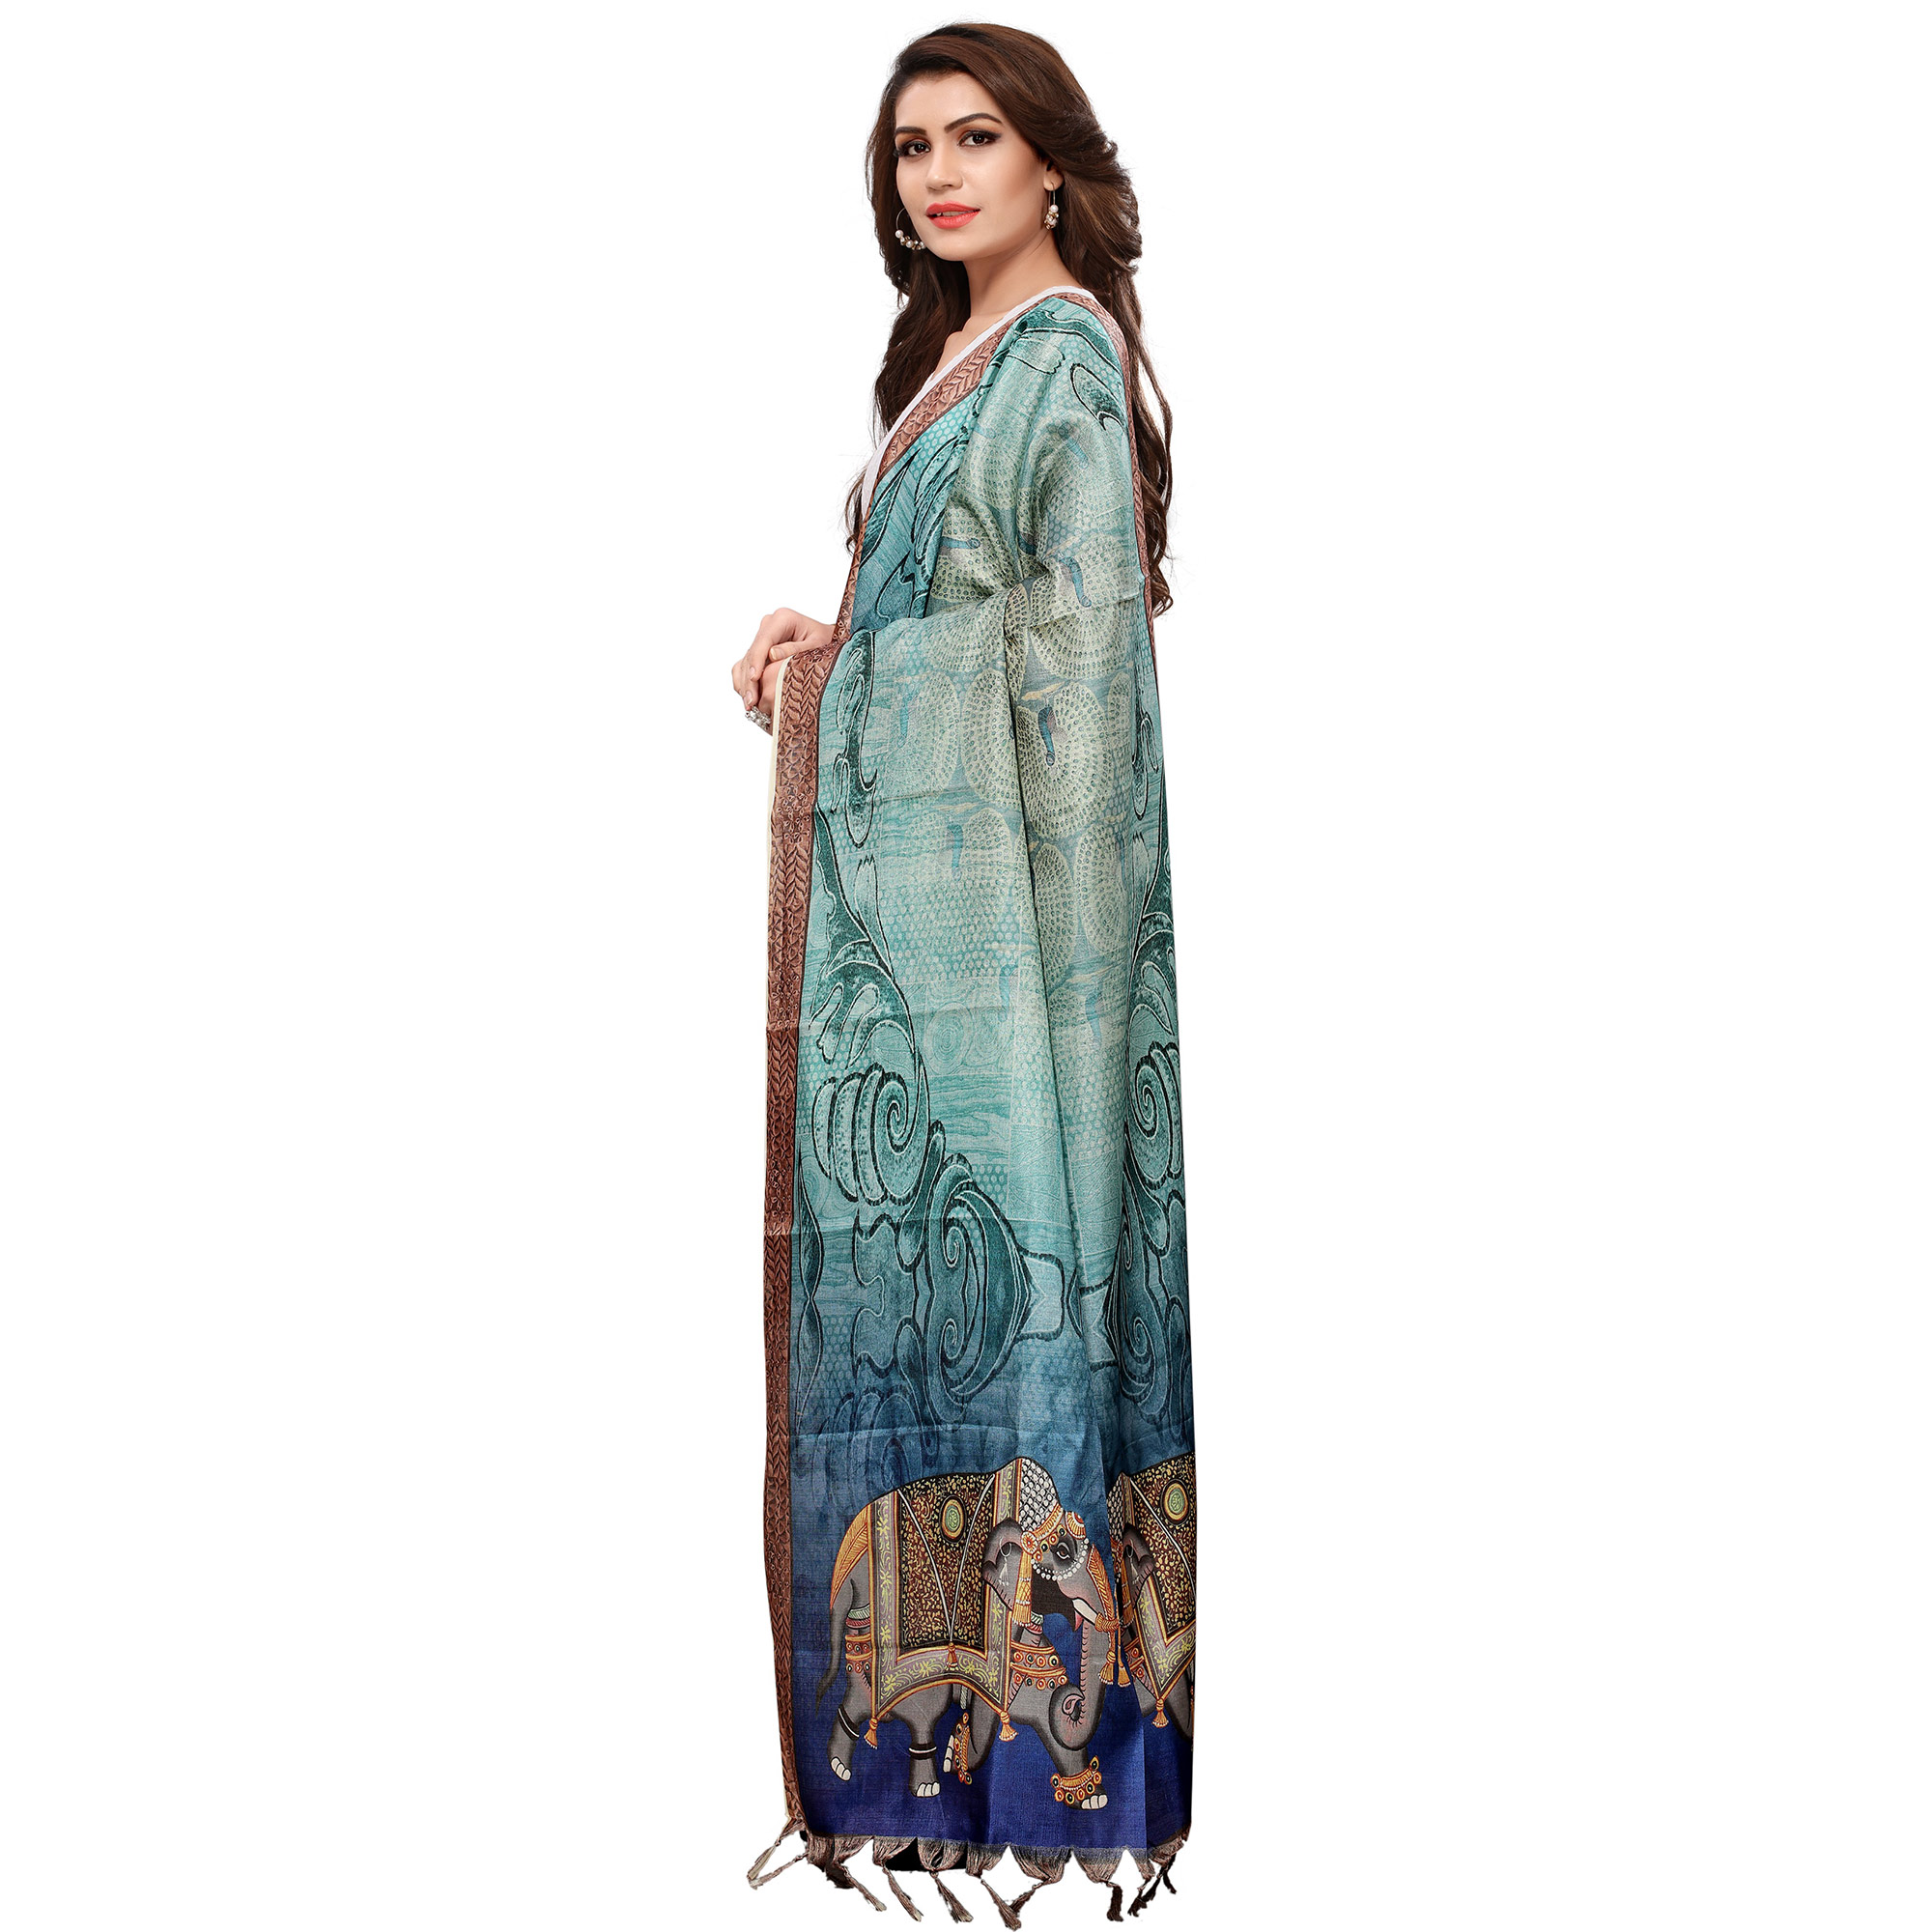 Impressive Shaded Blue Colored Casual Wear Digital Printed Khadi Silk Dupatta